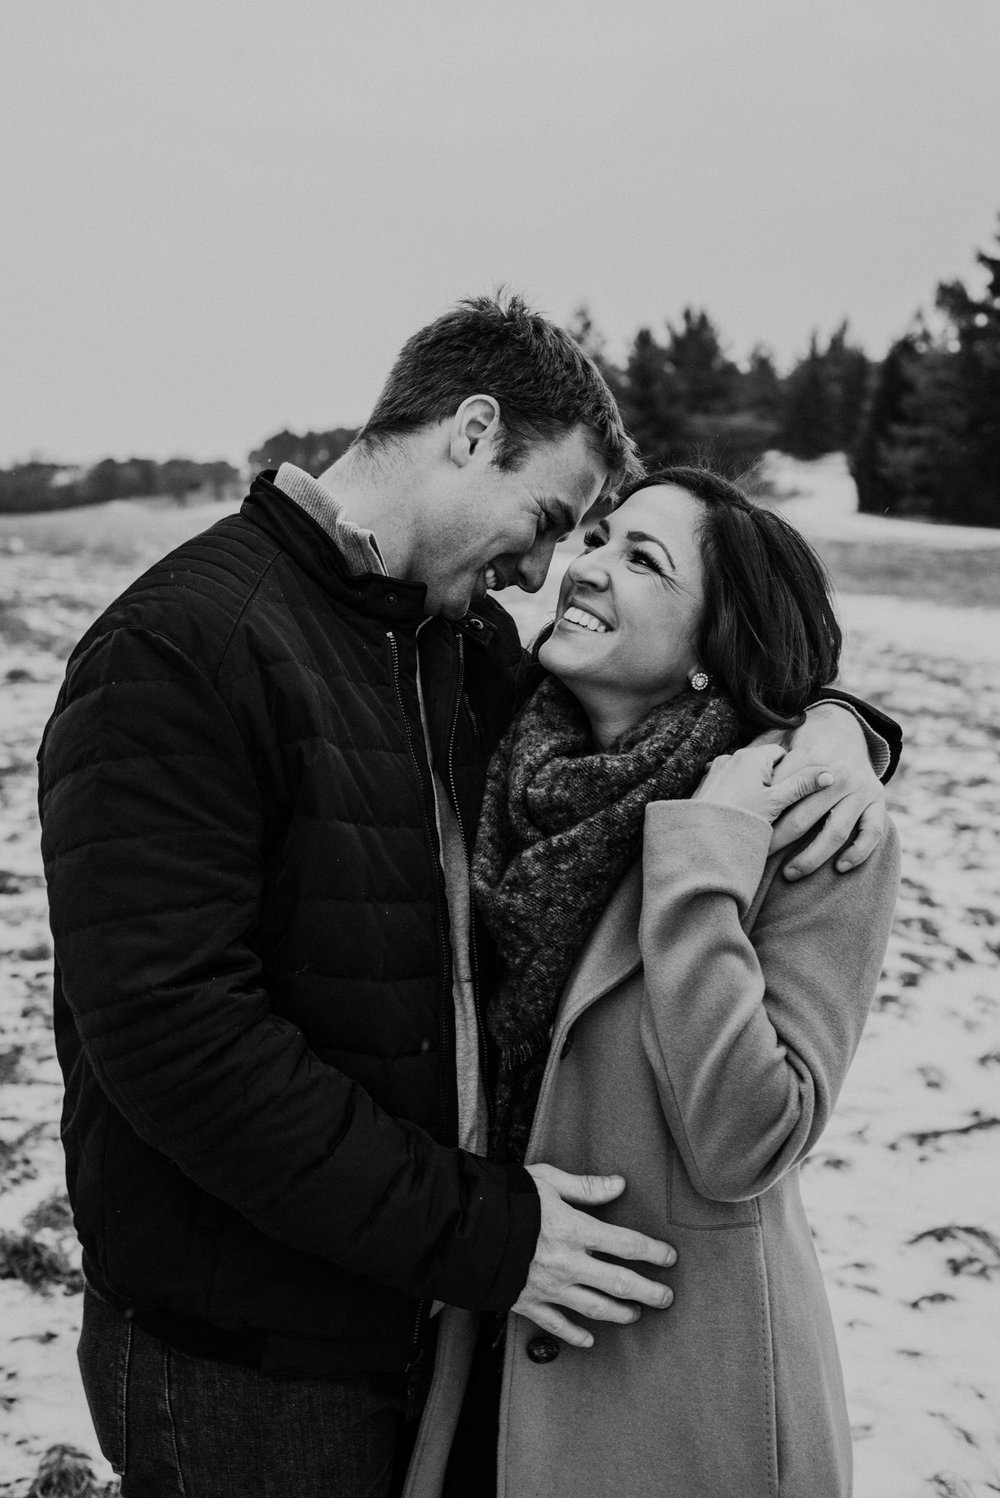 Lincoln-Columbus-Nebraska-Winter-Engagement-Kaylie-Sirek-Photography-18.jpg